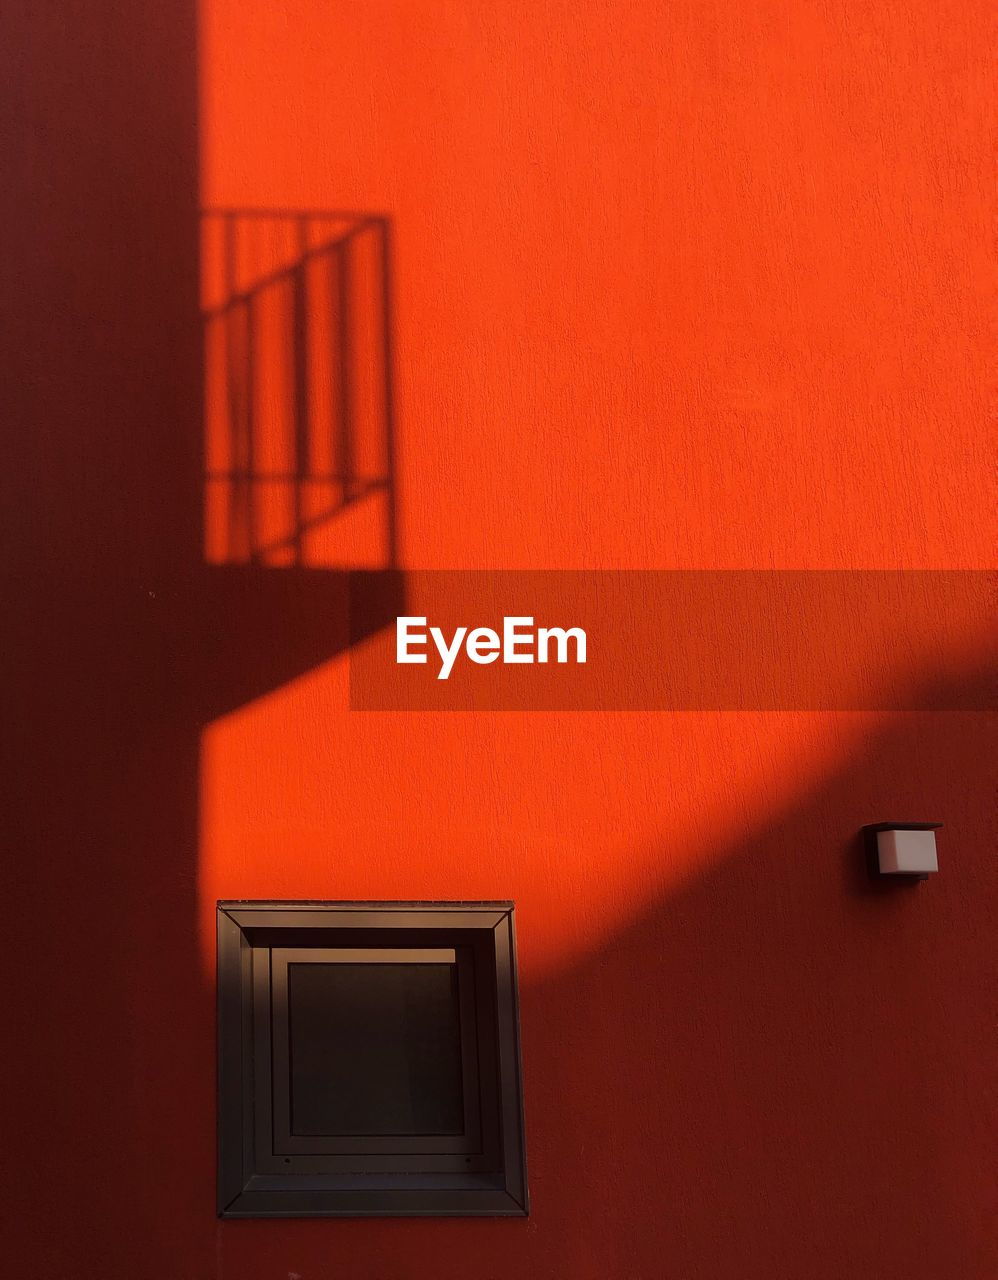 architecture, built structure, wall - building feature, no people, orange color, building exterior, building, shadow, window, red, railing, door, wall, geometric shape, house, staircase, entrance, home interior, focus on shadow